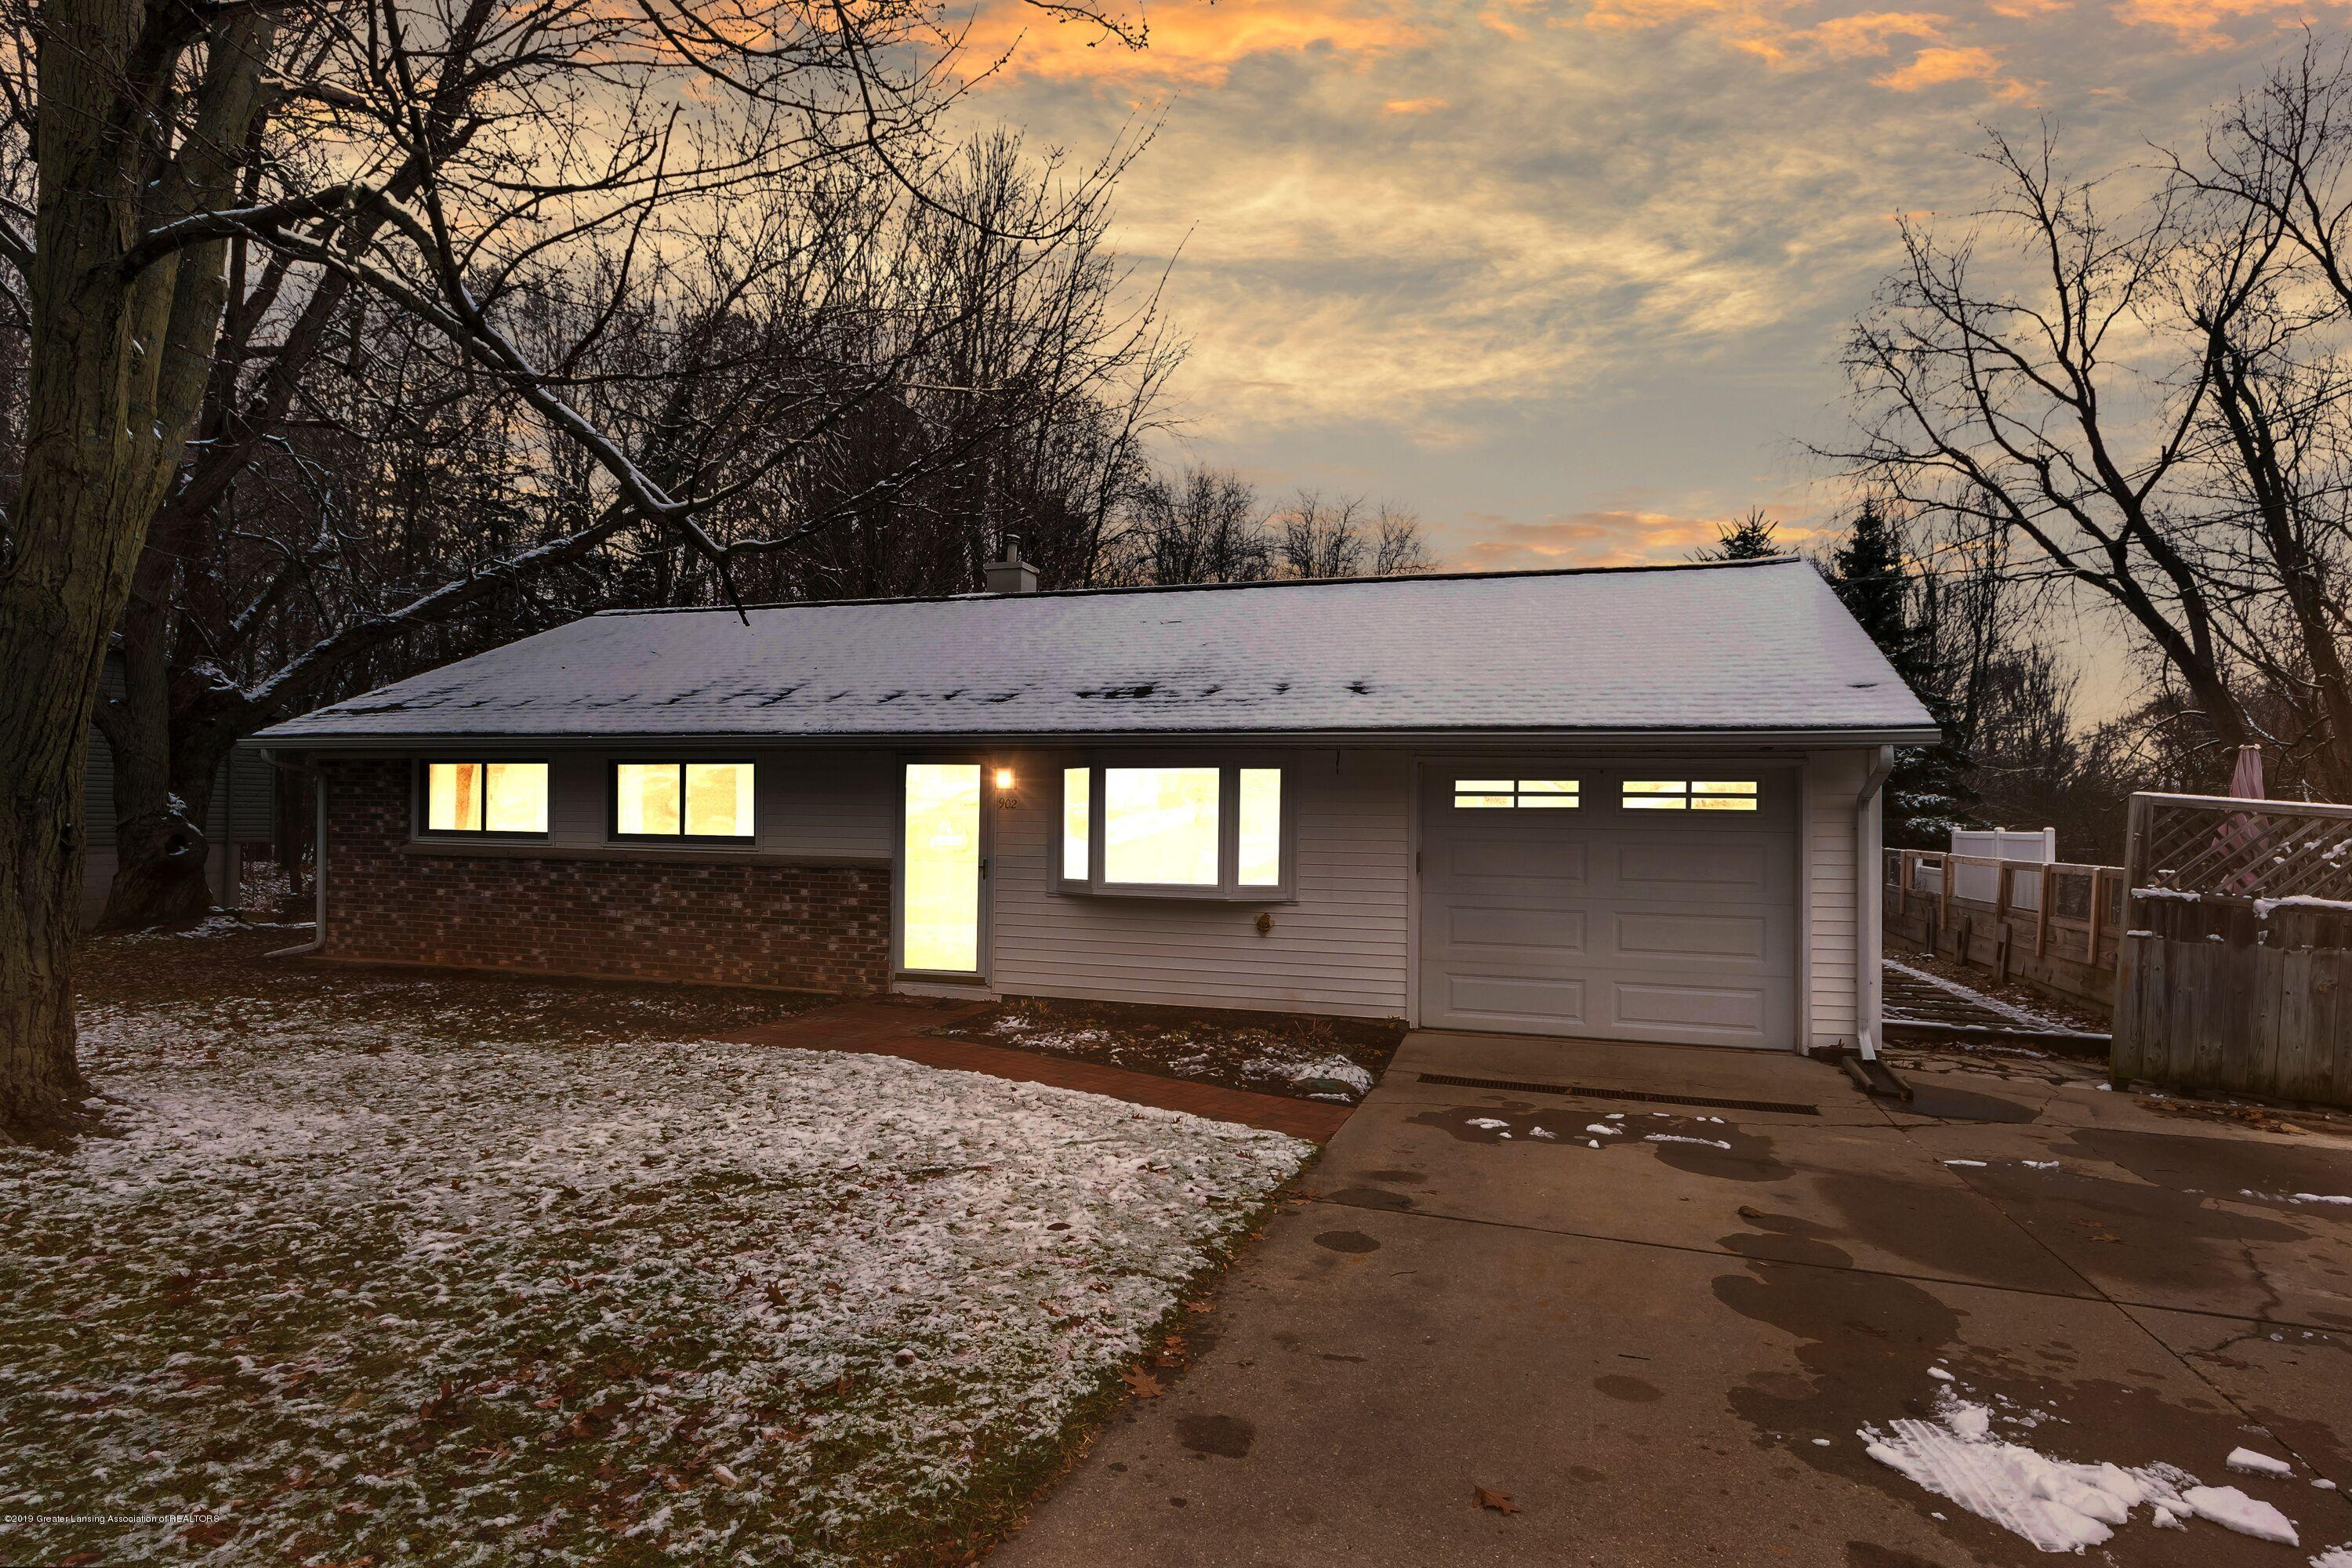 902 Elmwood - Twilight Pic - 1